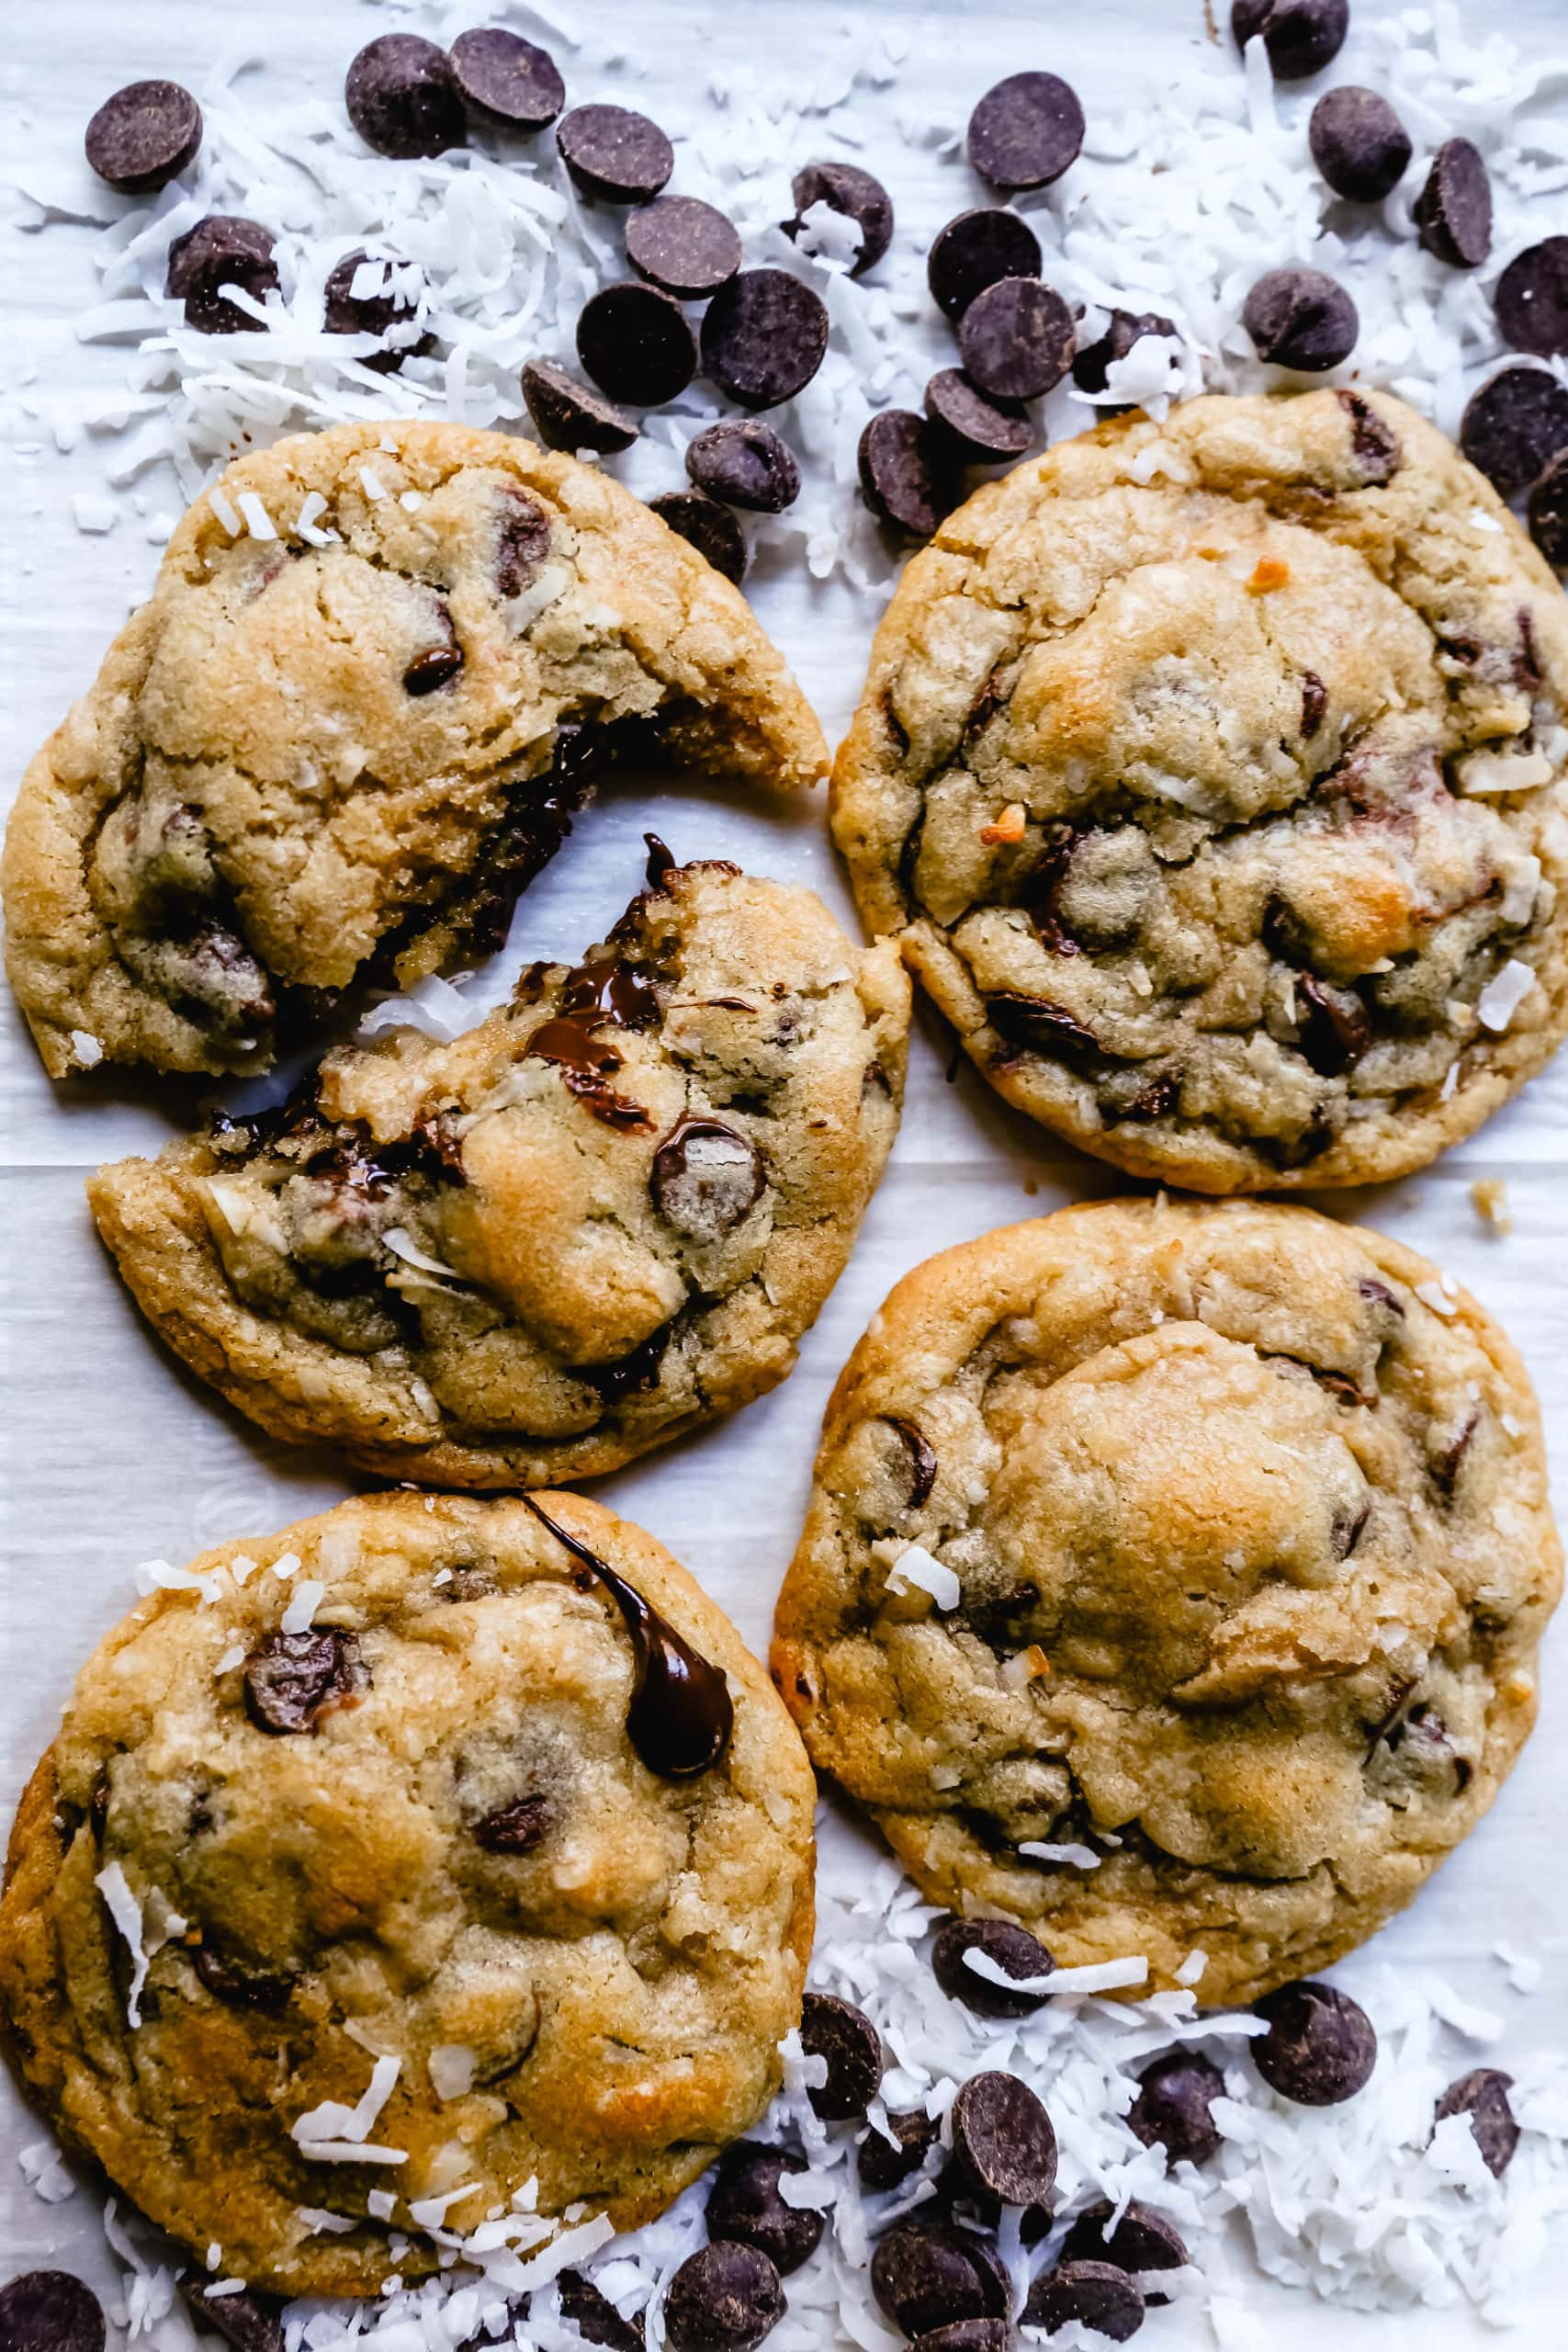 Chocolate Chip Coconut Cookies. Soft, chewy chocolate chip coconut cookies with semi-sweet chocolate and sweetened flaked coconut. The perfect chocolate coconut cookies! www.modernhoney.com #cookies #chocolate #chocolatechipcookie #chocolatechipcookies #chocolatechipcoconut